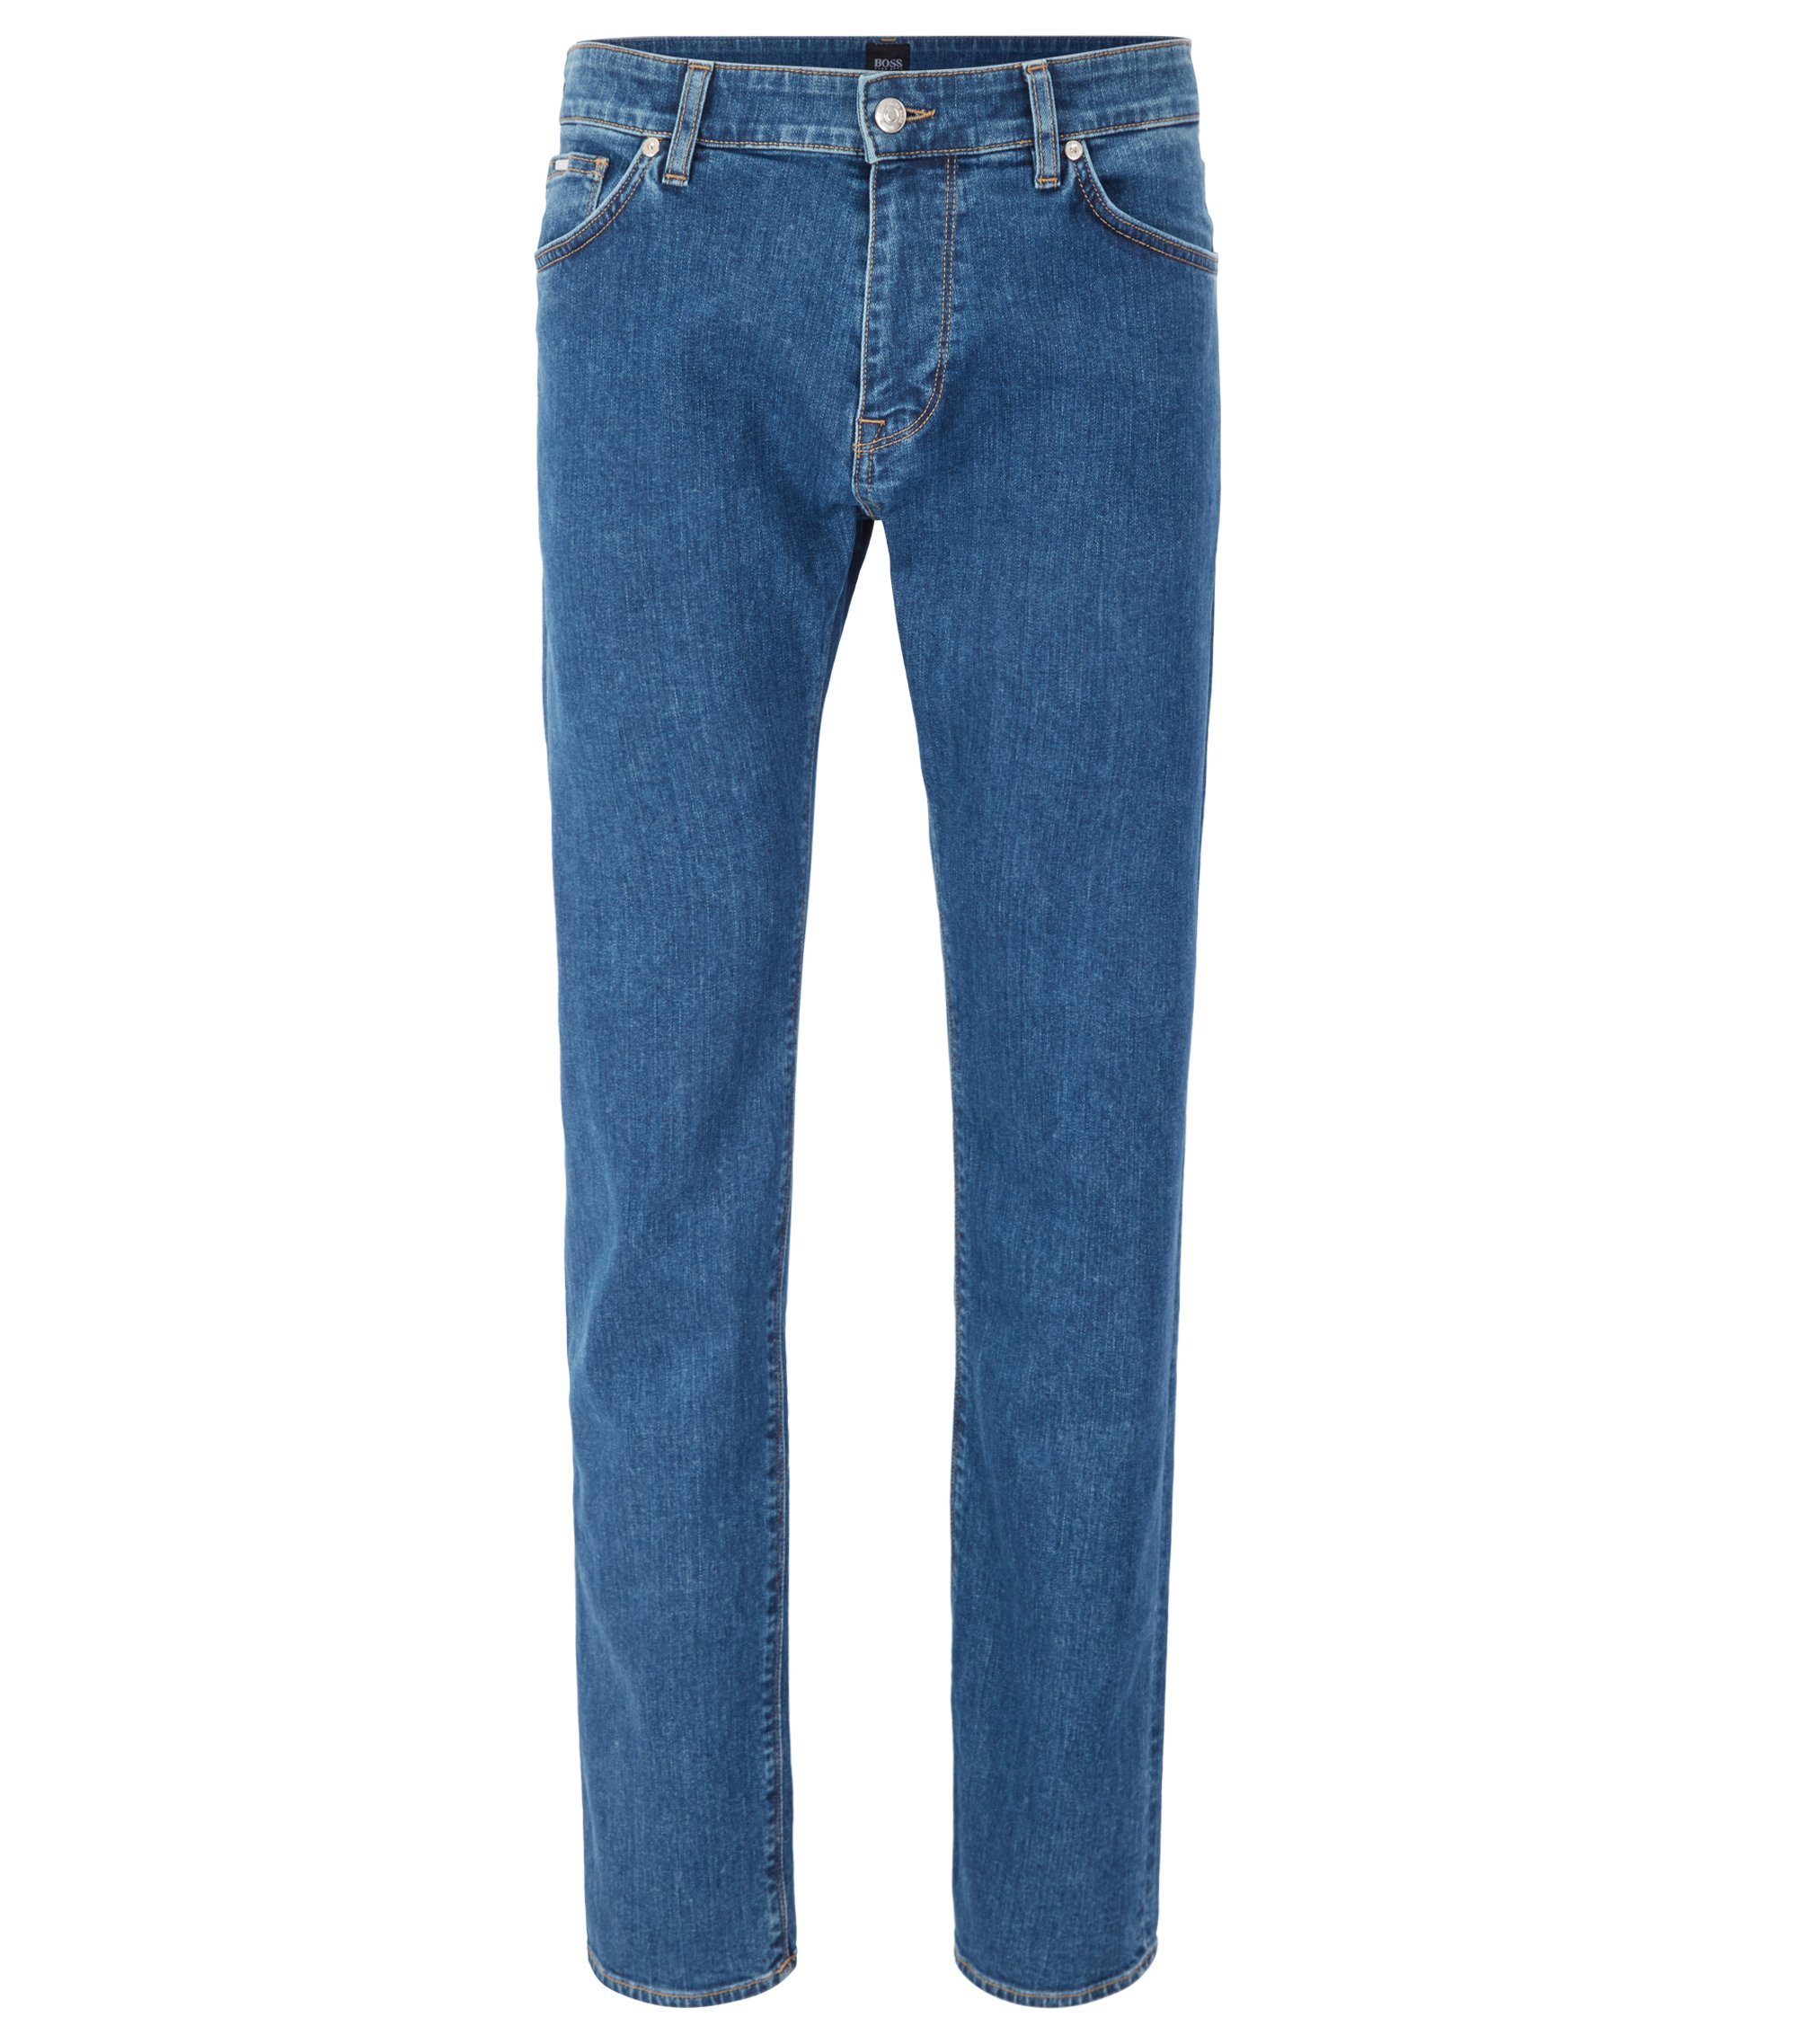 Jean Regular fit en denim stretch bleu moyen à la finition usée, Bleu